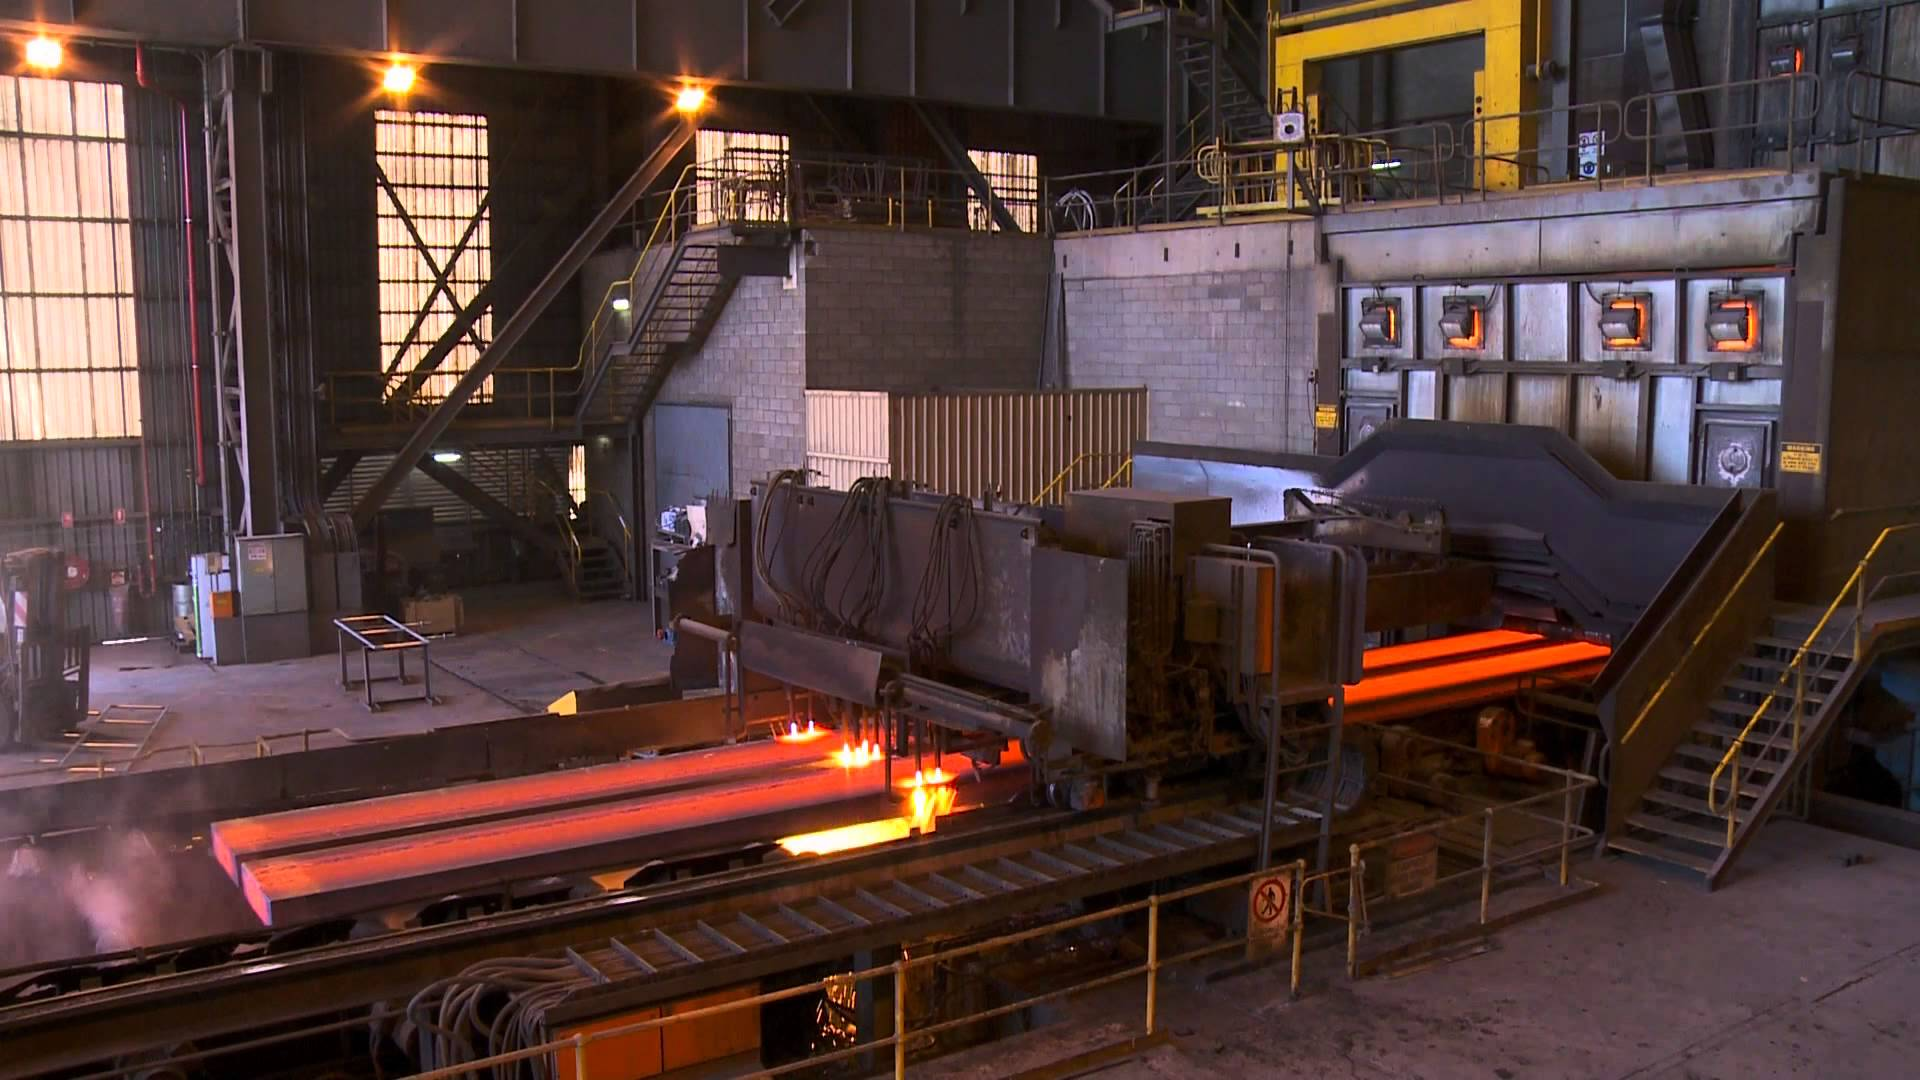 Labor steel policy can be strengthened